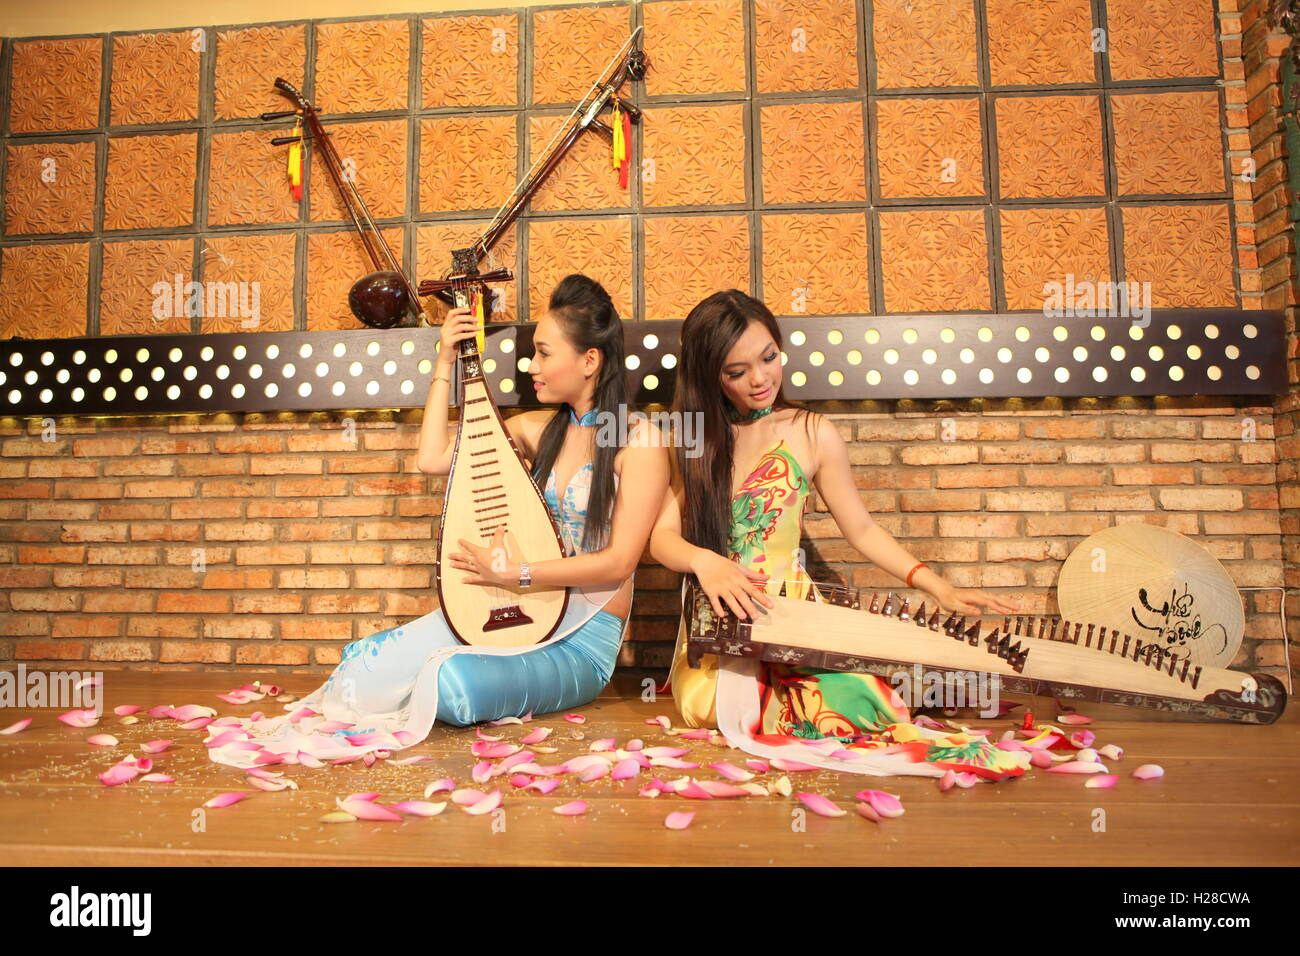 Vinh Long, Vietnam - November 4, 2015: Two young girls are playing Vietnamese traditional instruments in a restaurant - Stock Image